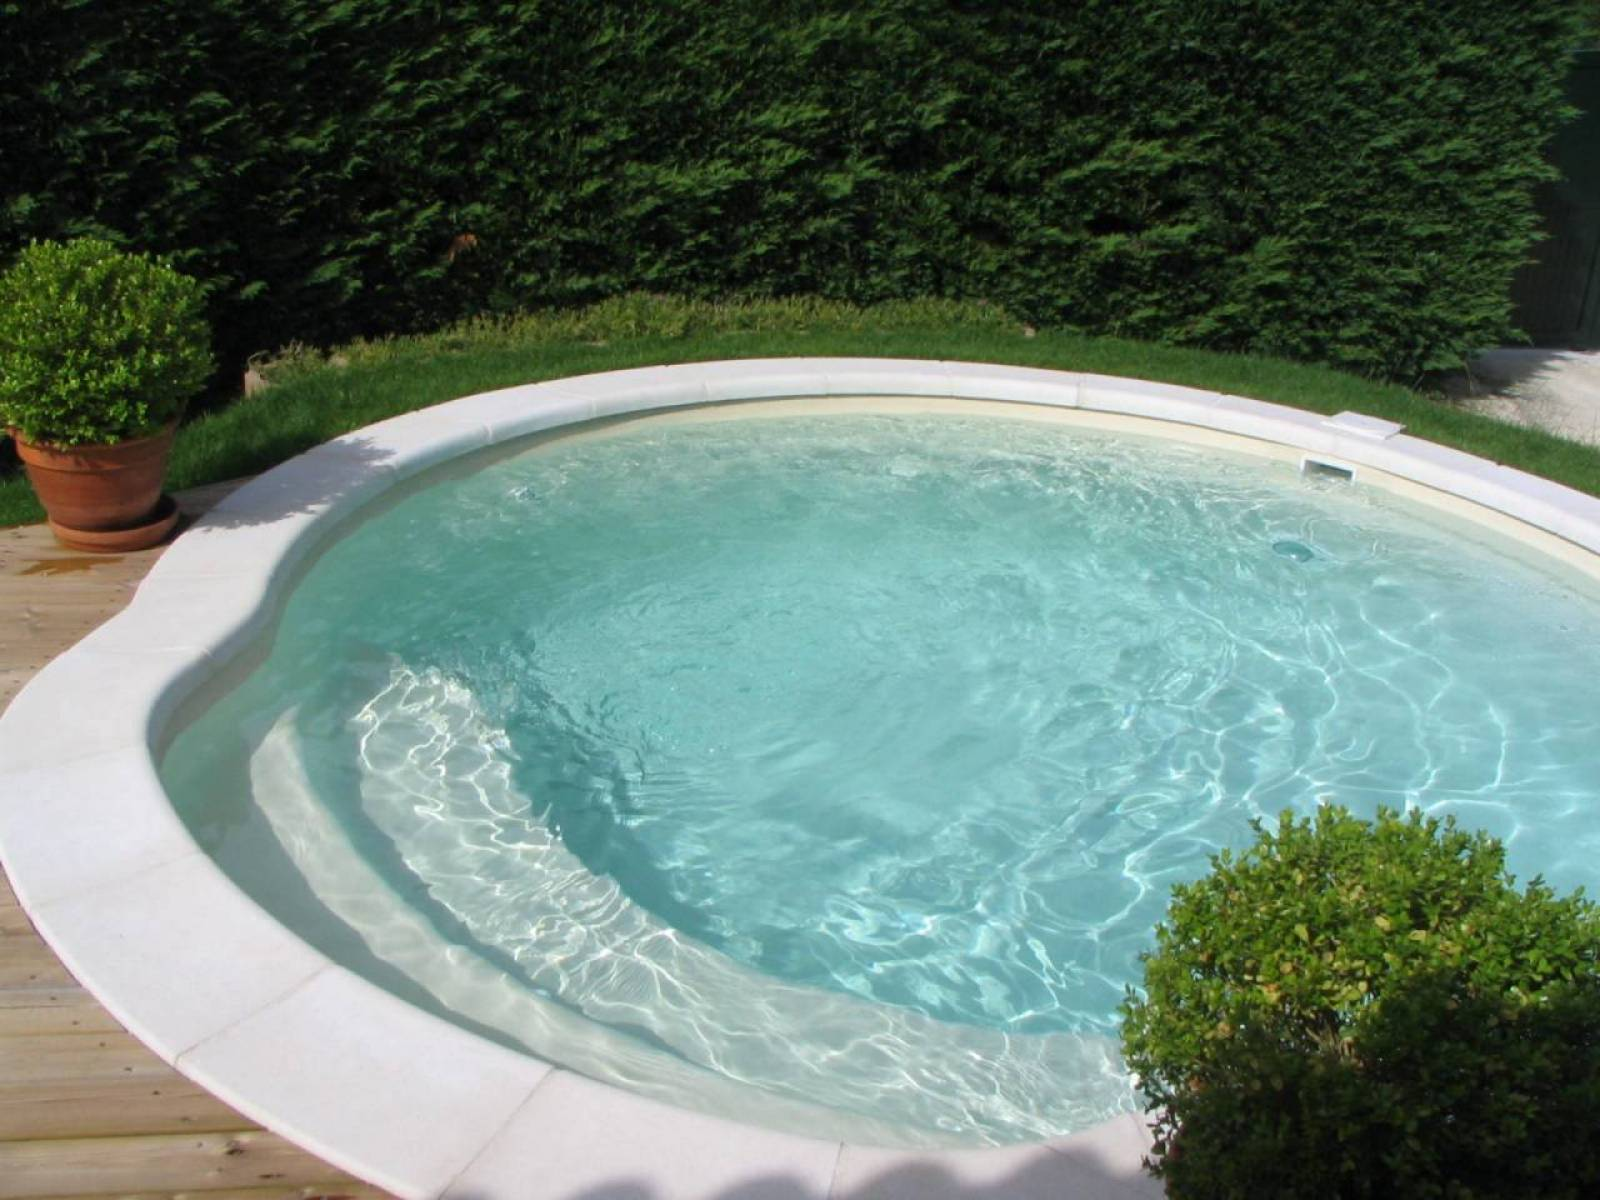 Piscine coque polyester fond plat nacre alliance for Piscine coque polyester grise